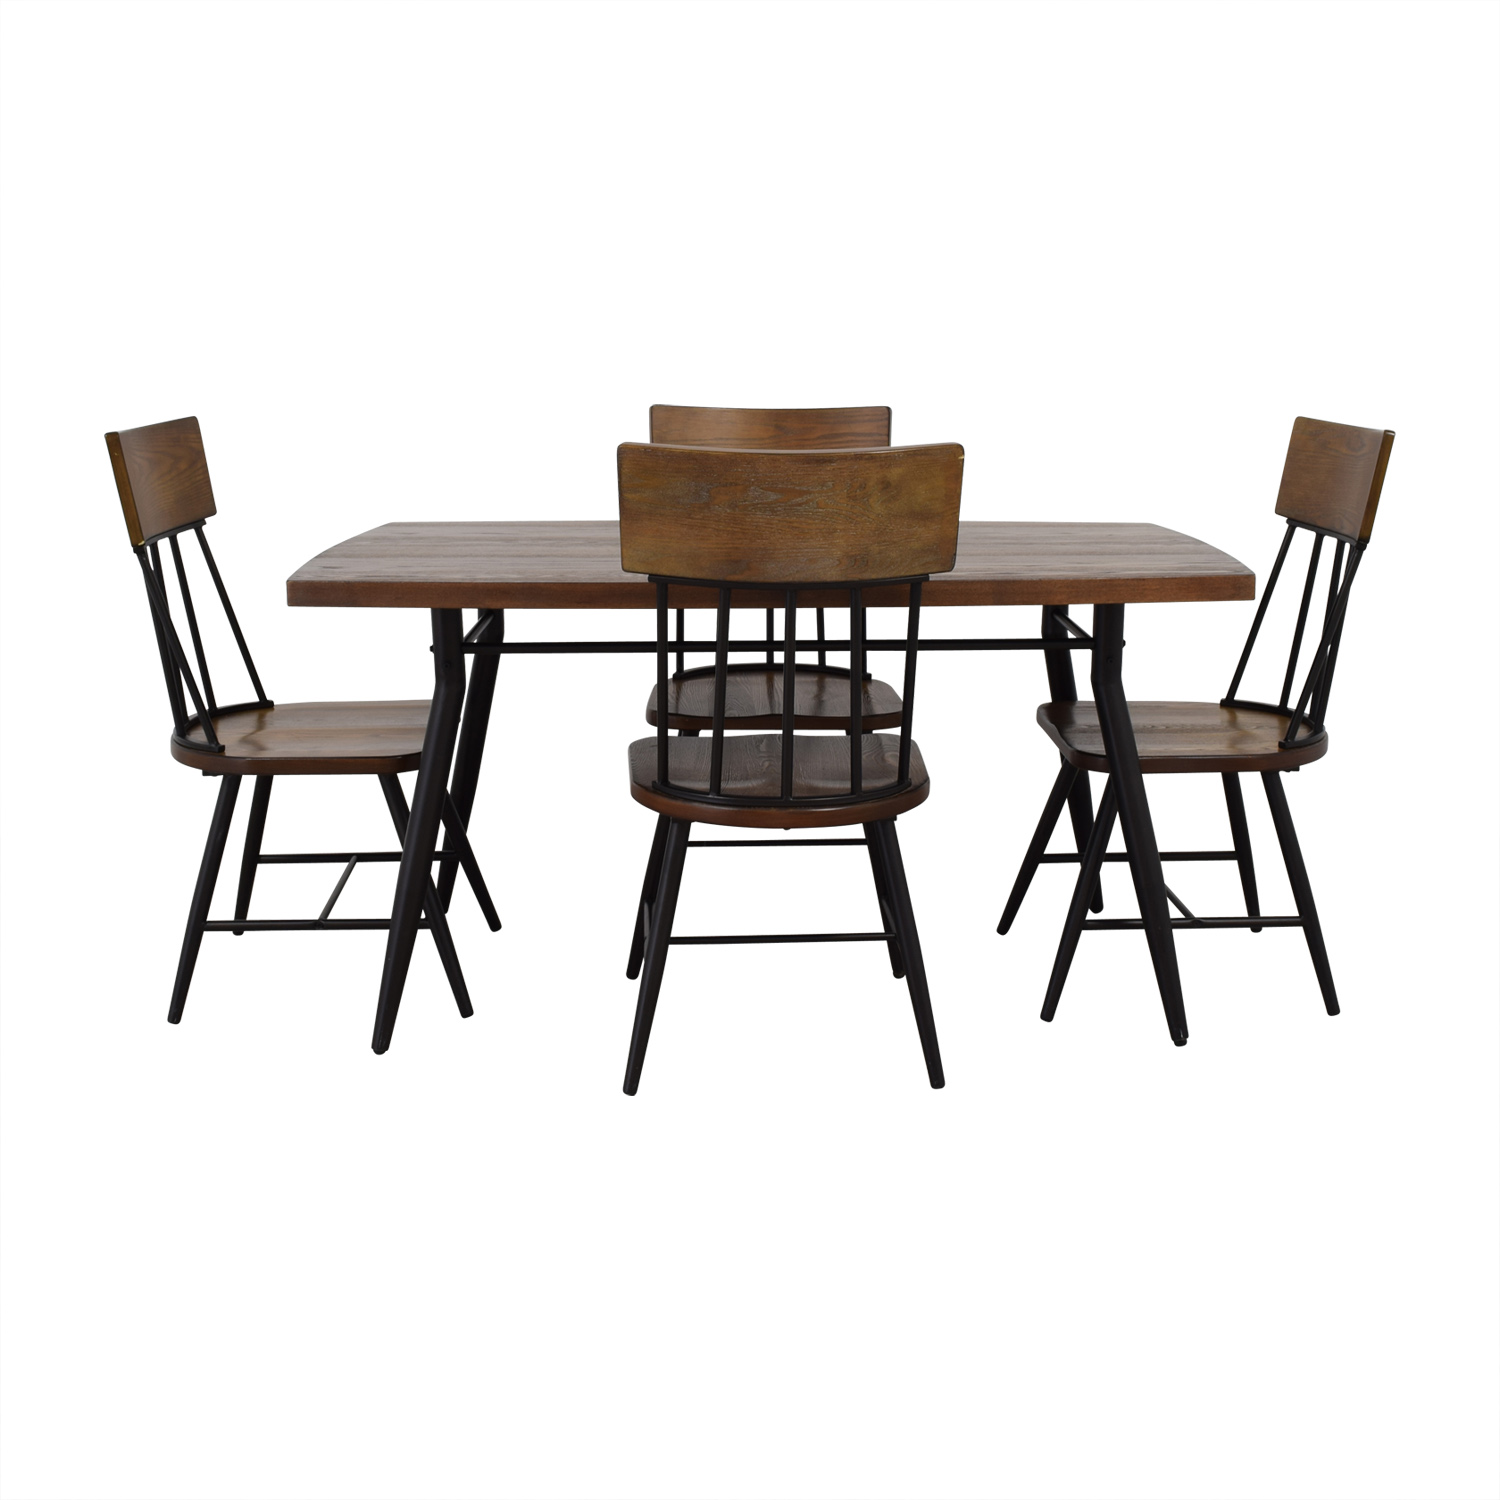 Ashley Furniture Ashley Furniture Wood Dining Room Table and Chair Set price